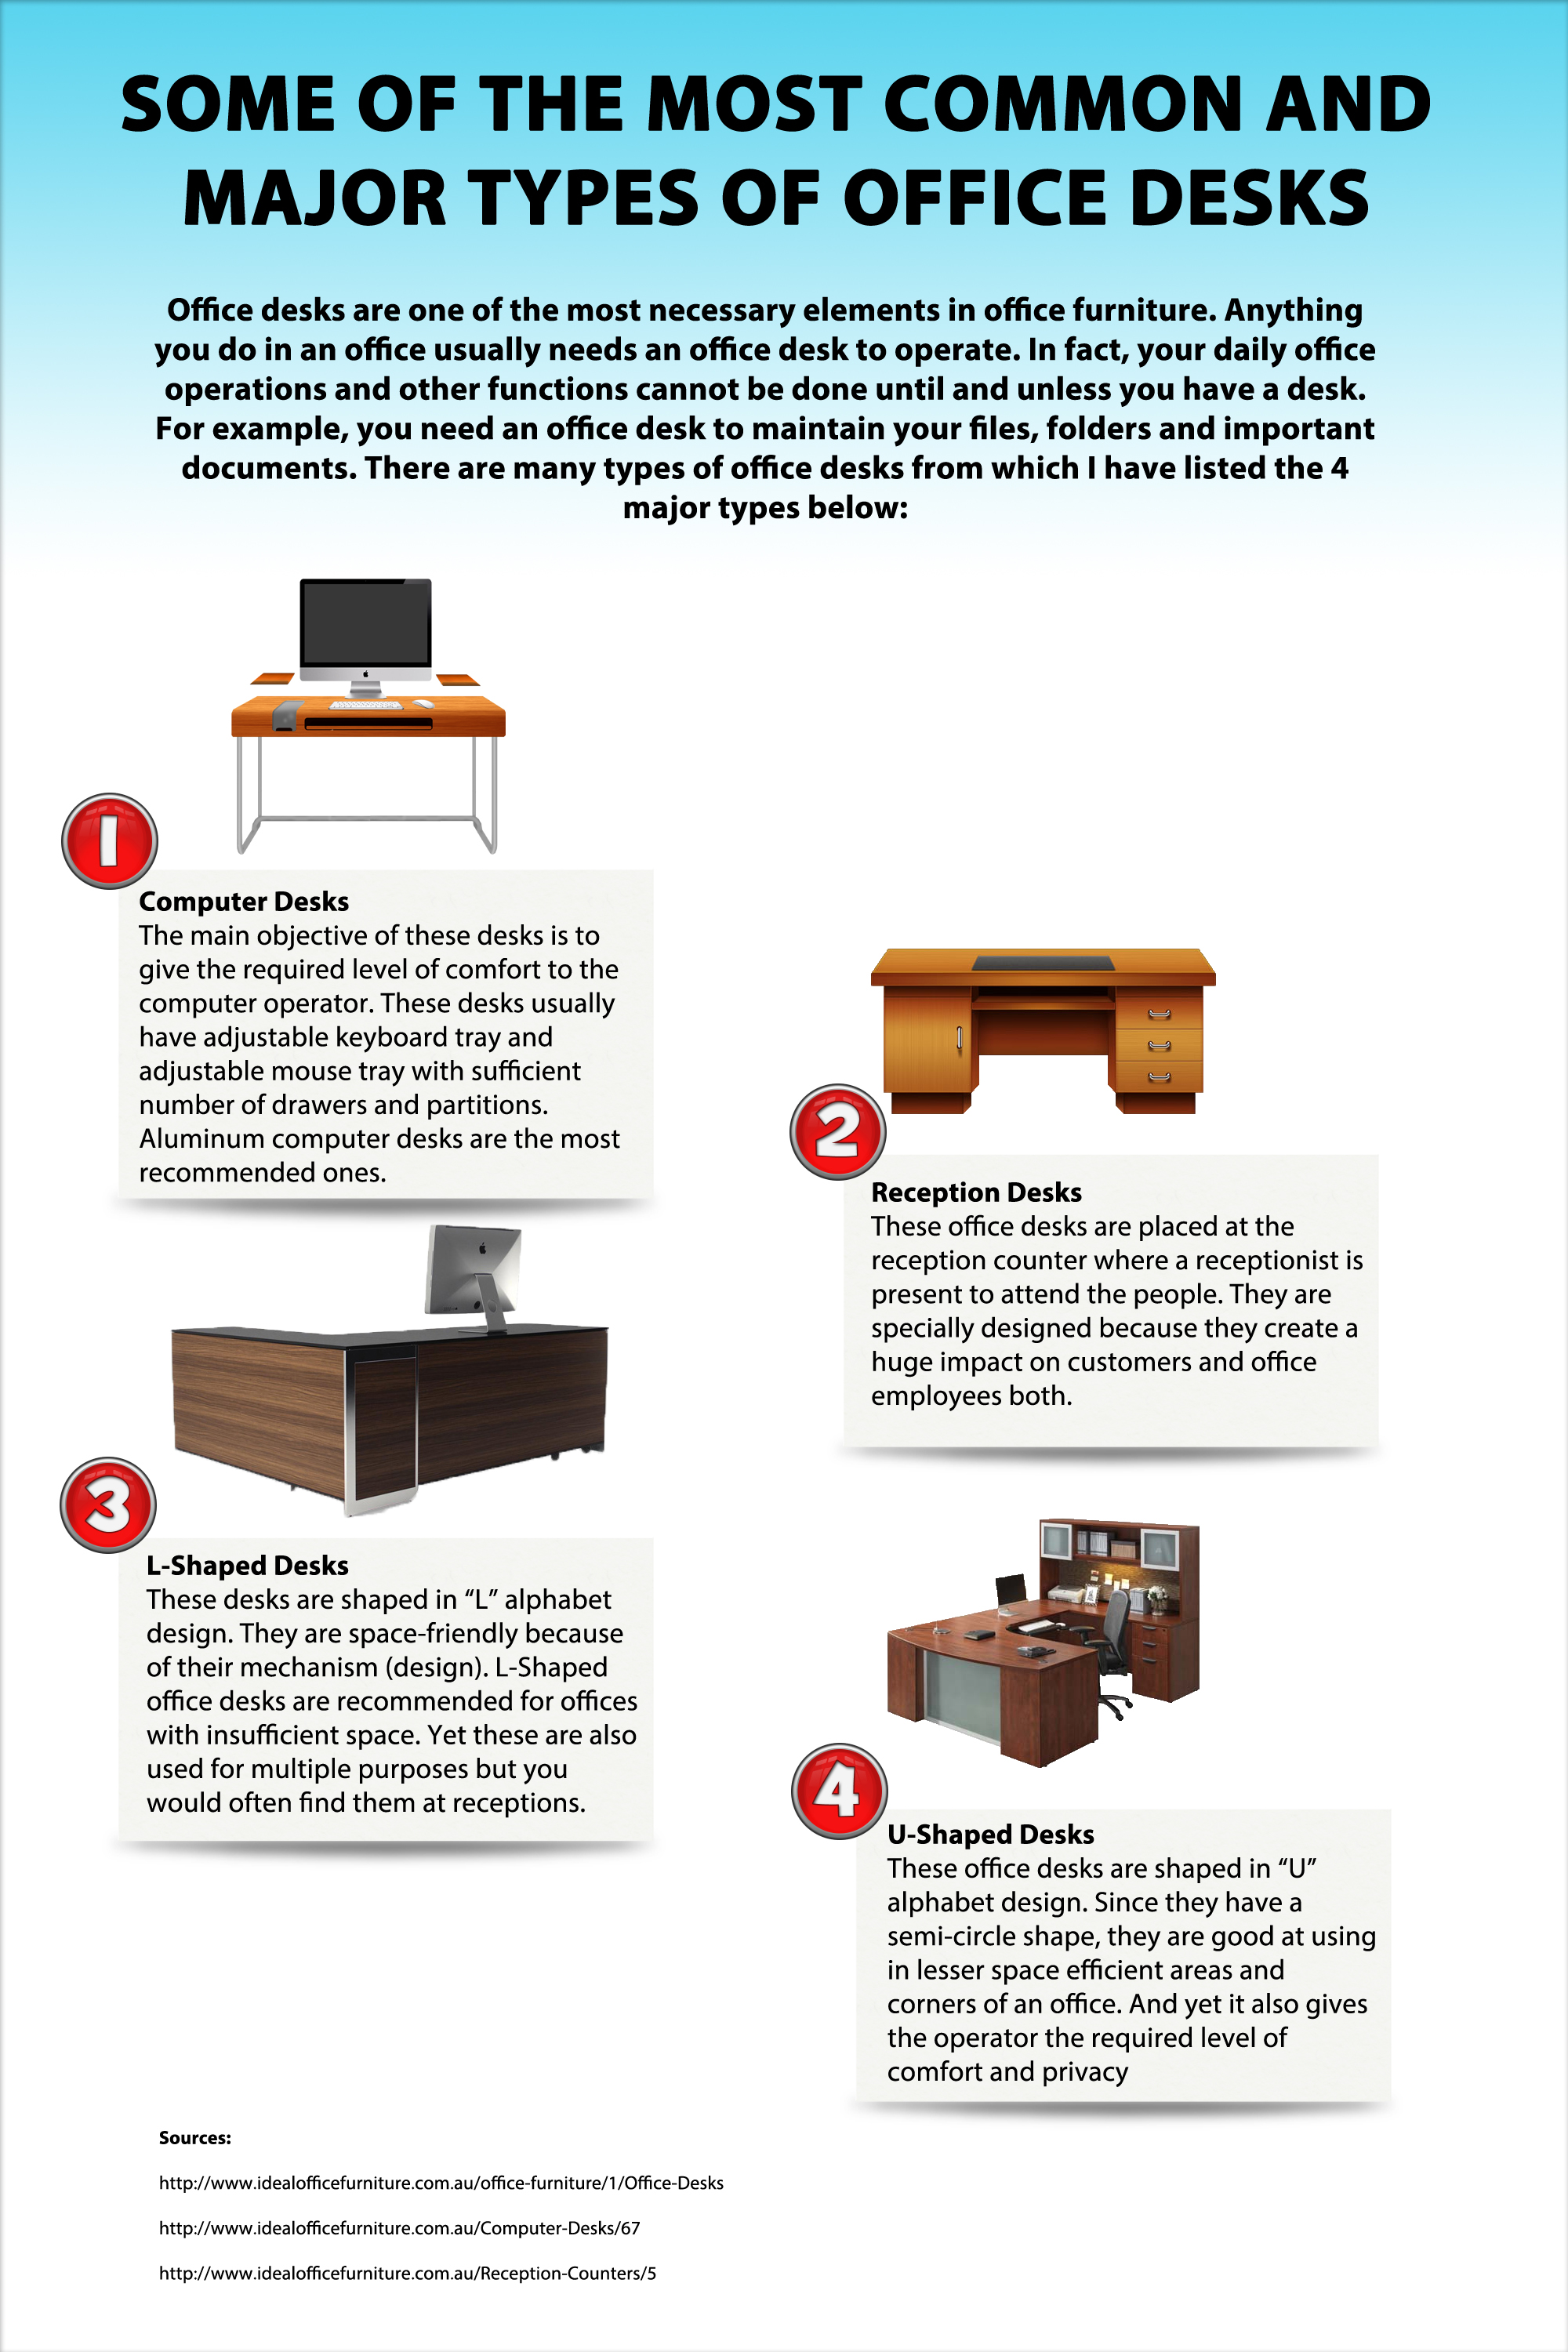 Types Of Desks Interesting Some Of The Most Common And Major Types Of Office Desks  Visual.ly 2017